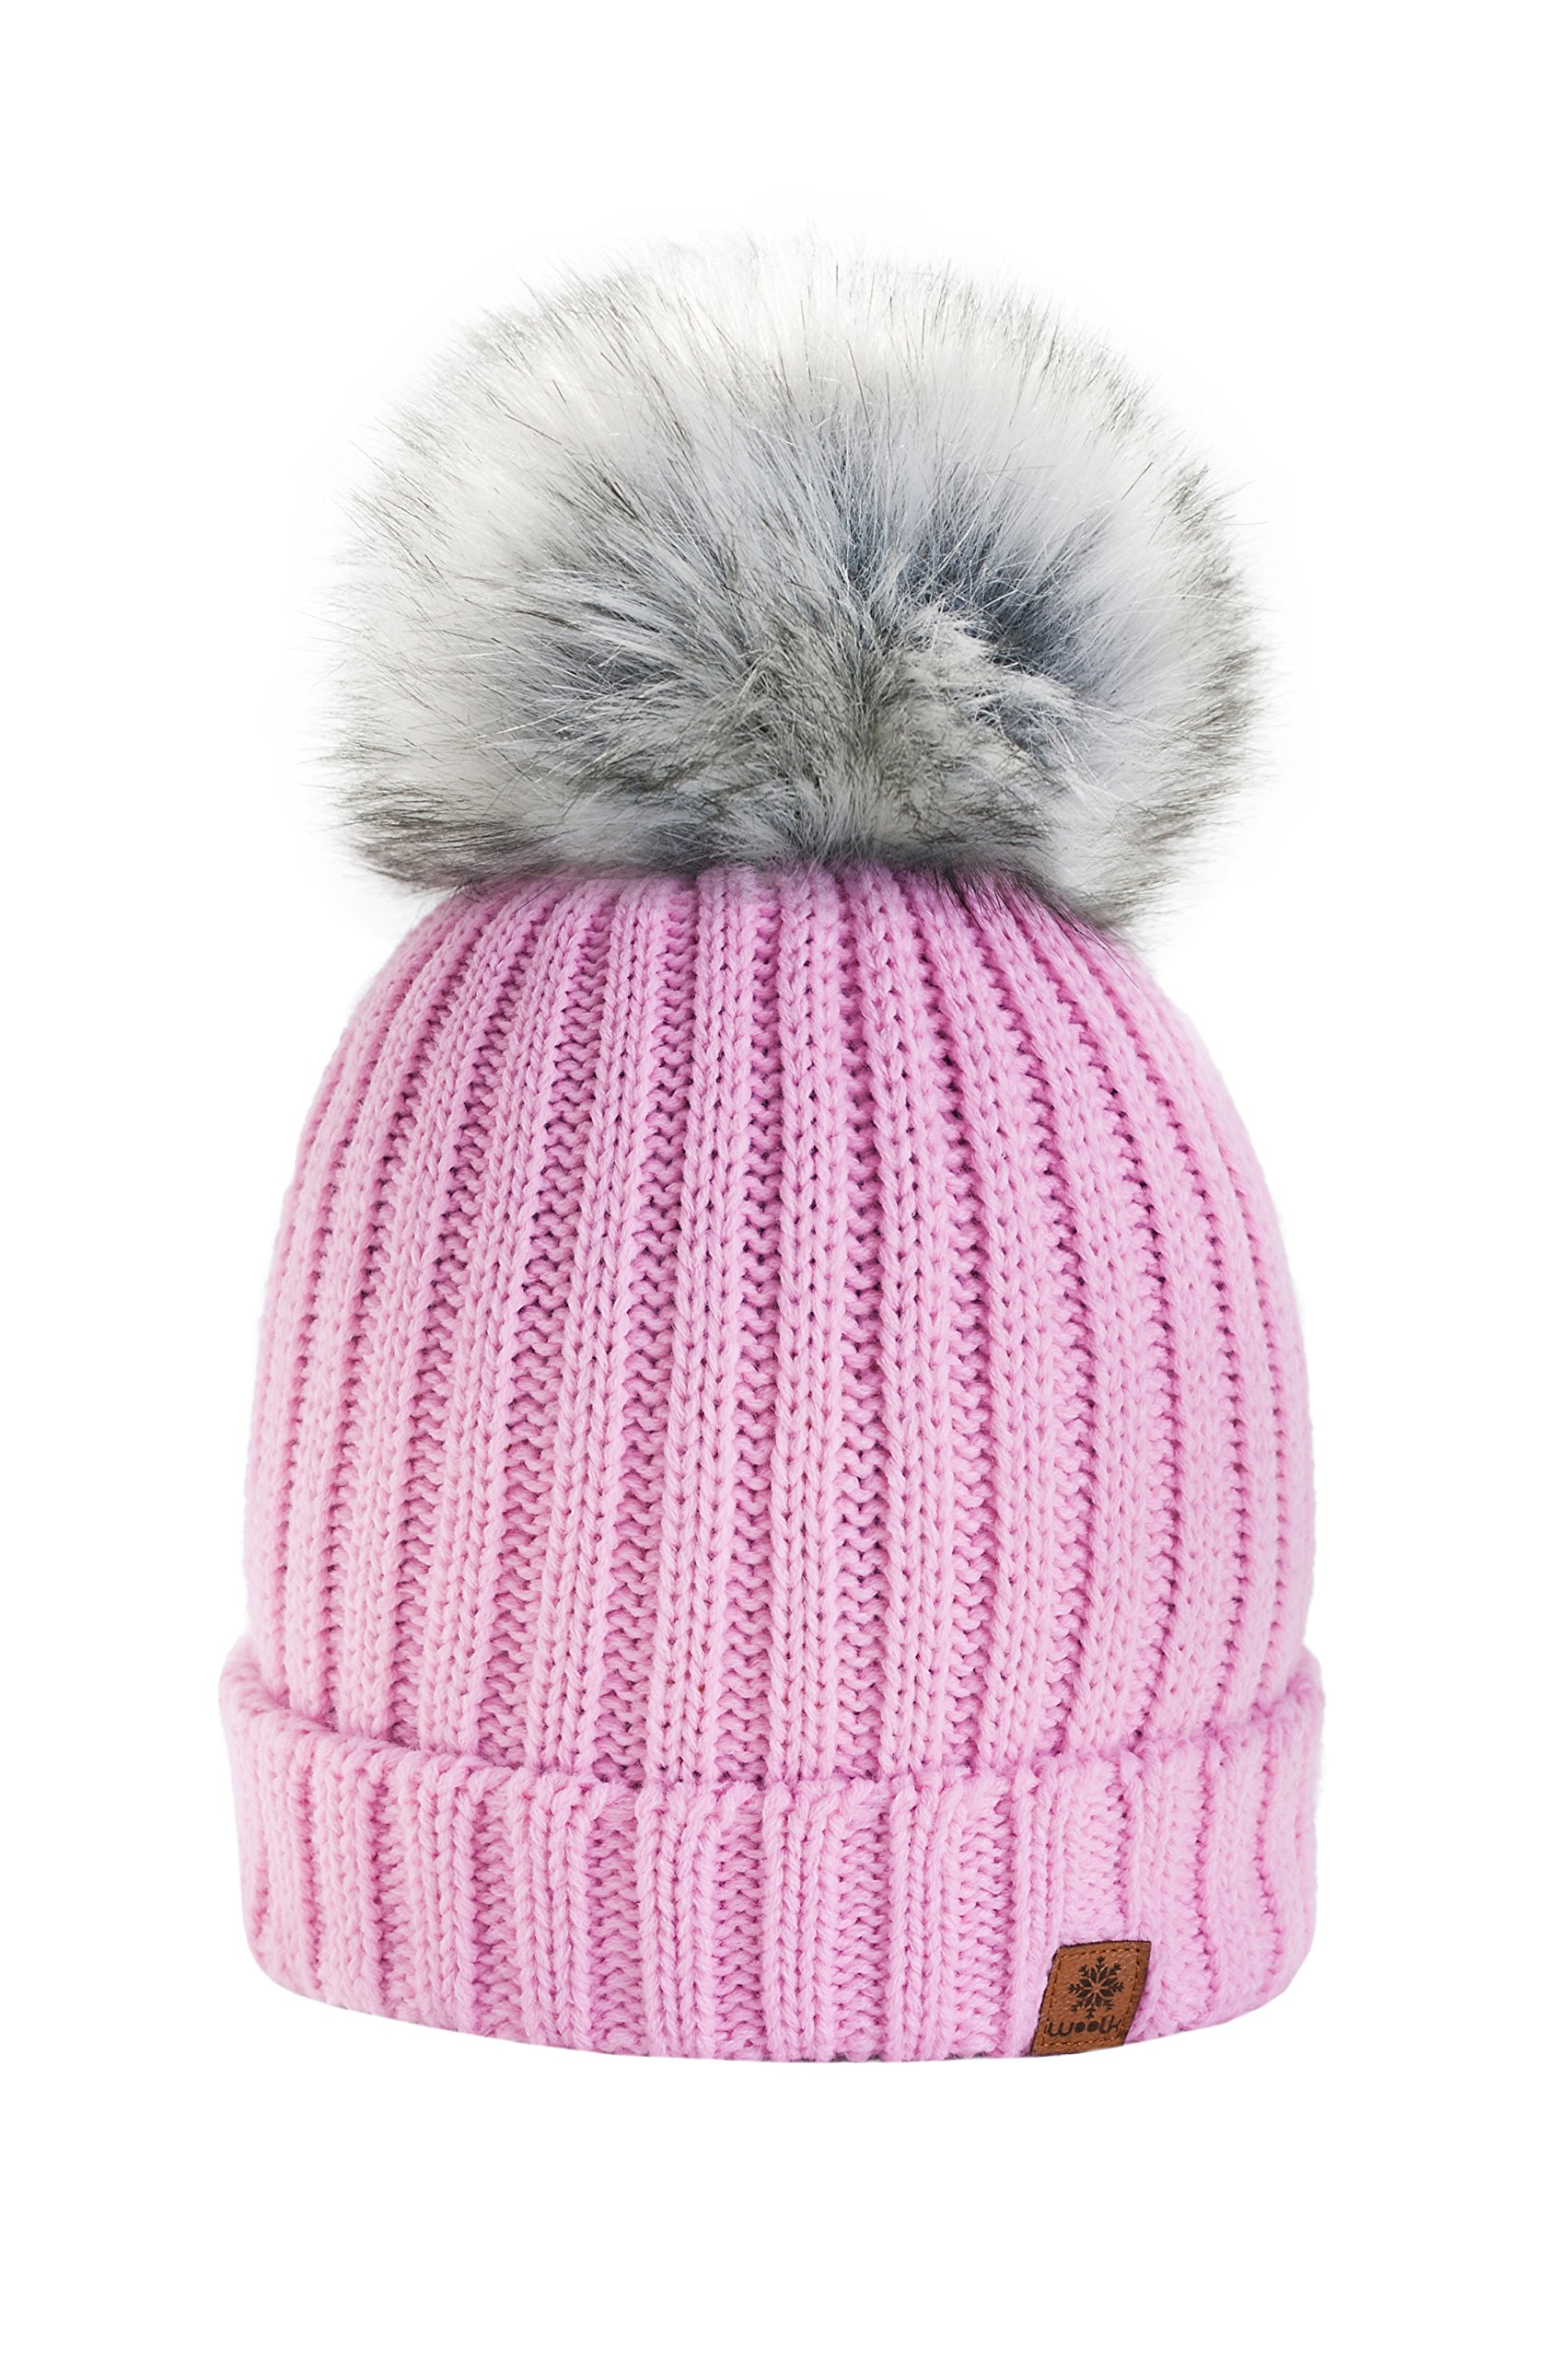 aa1bf58cd4e 4sold Rita Womens Girls Winter Hat Wool Knitted Beanie With Large Pom Pom  Cap Ski Snowboard ...